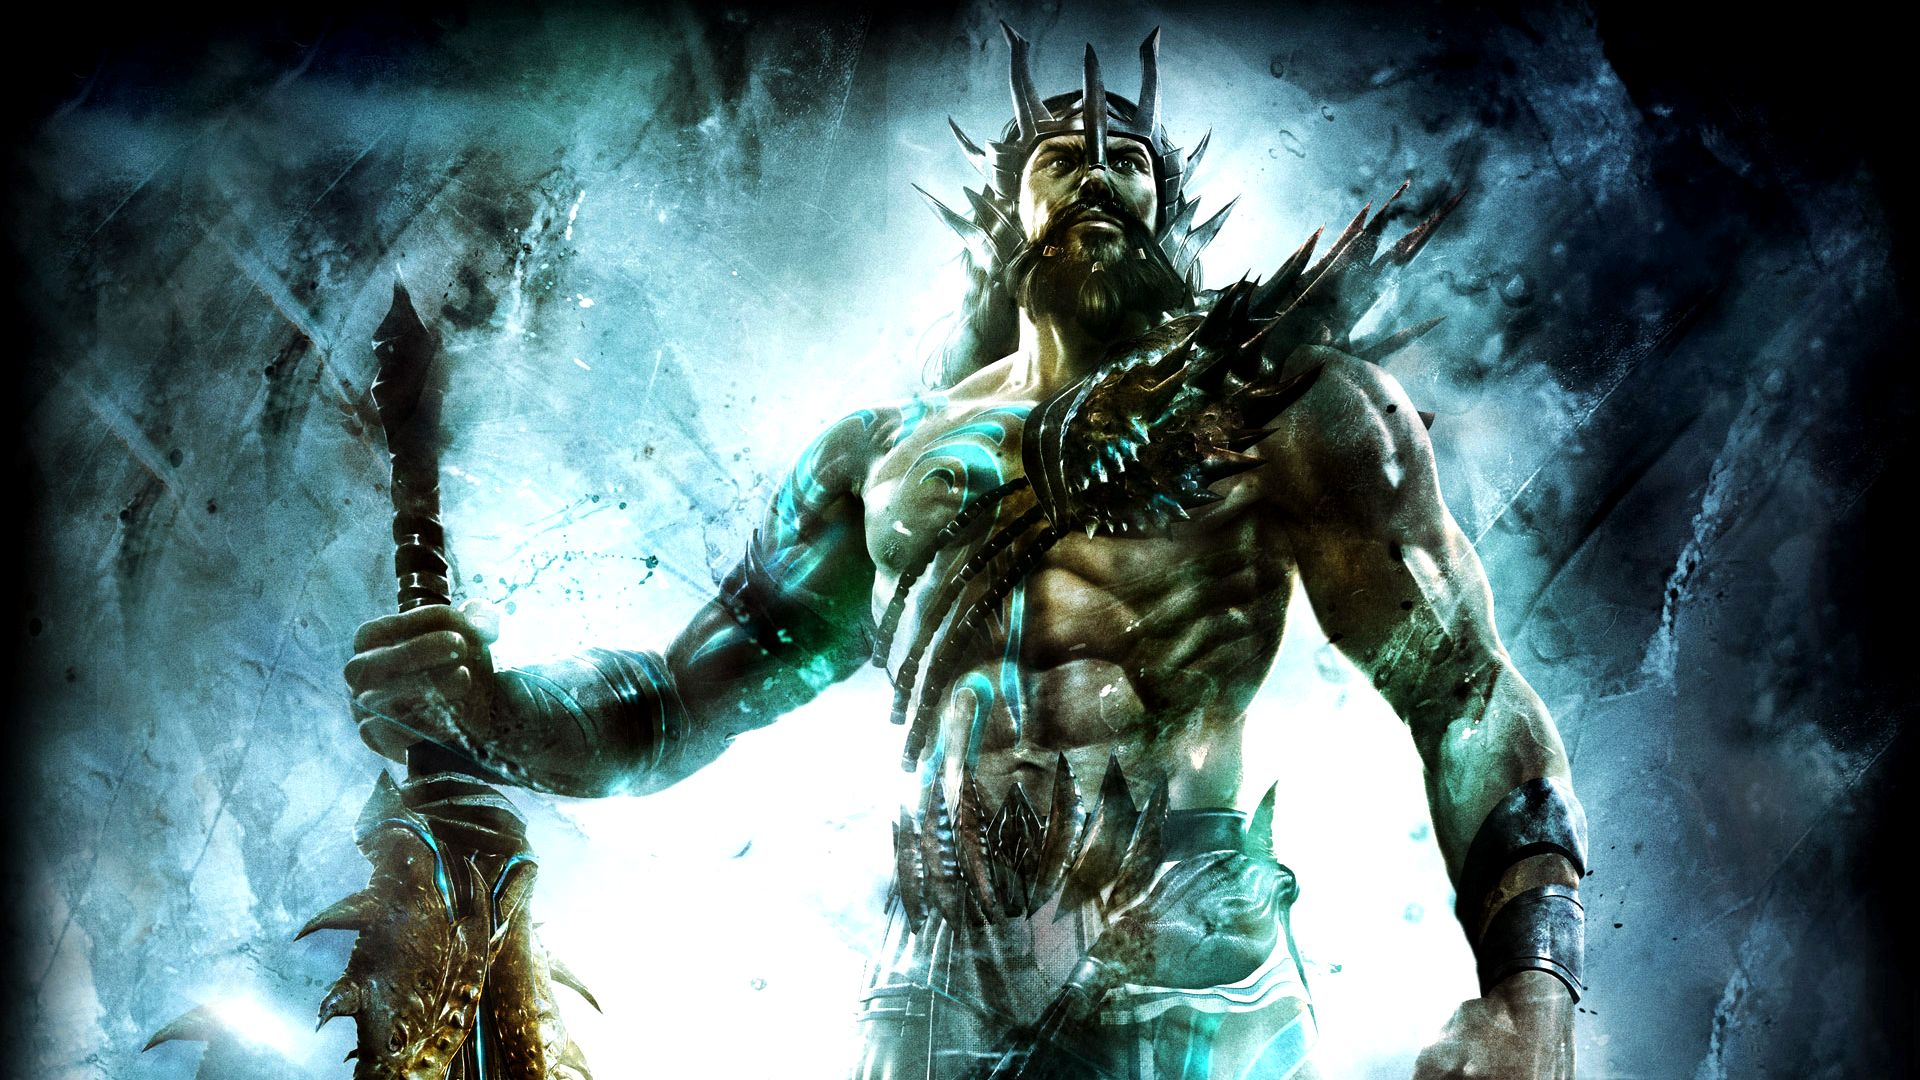 God of war 4 to understand more about norse mythology: will kratos fight thor? so much time